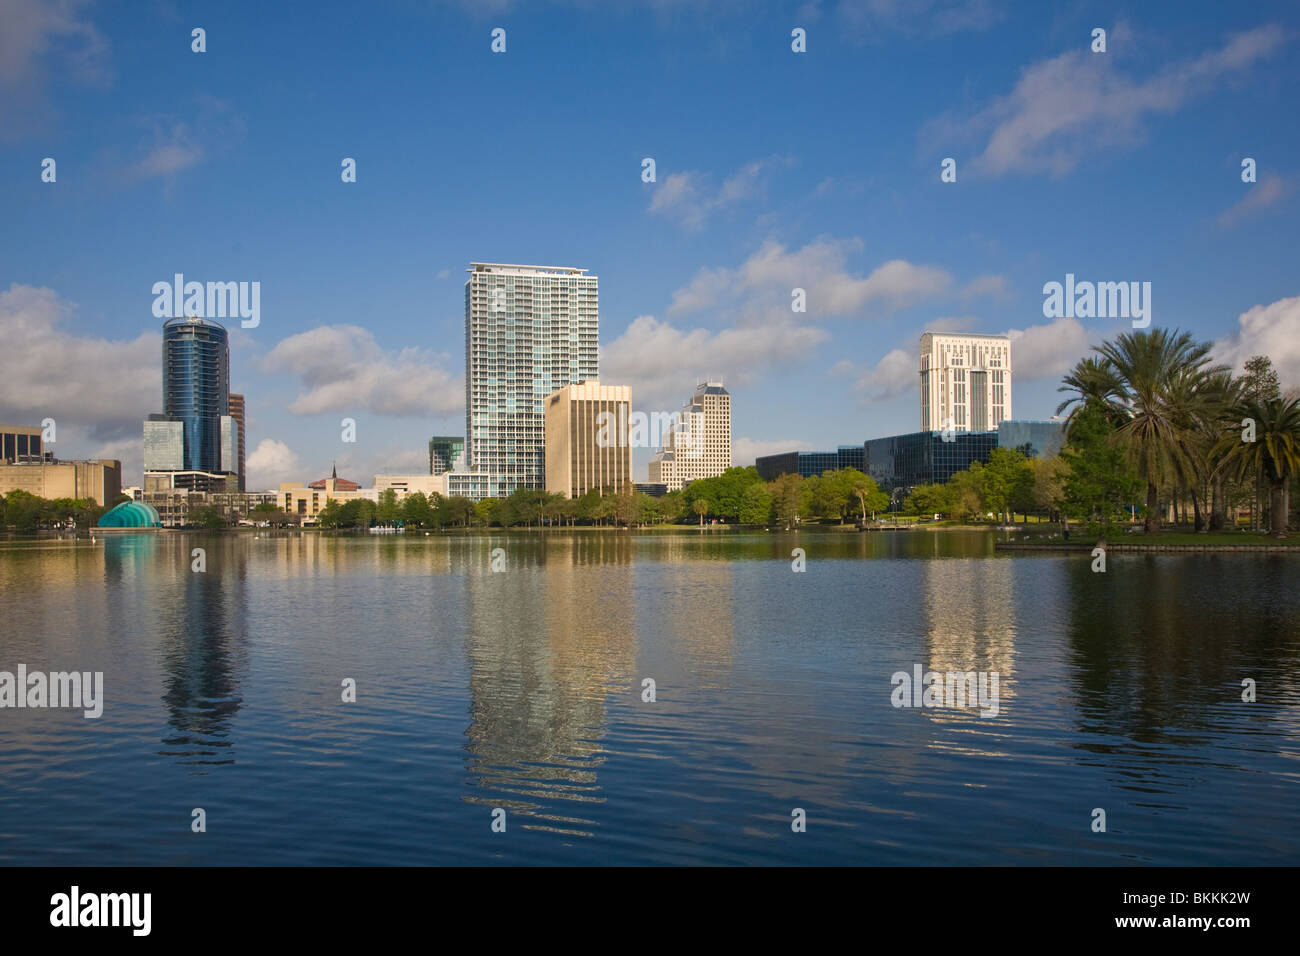 Lake City Florida Stock Photos Amp Lake City Florida Stock